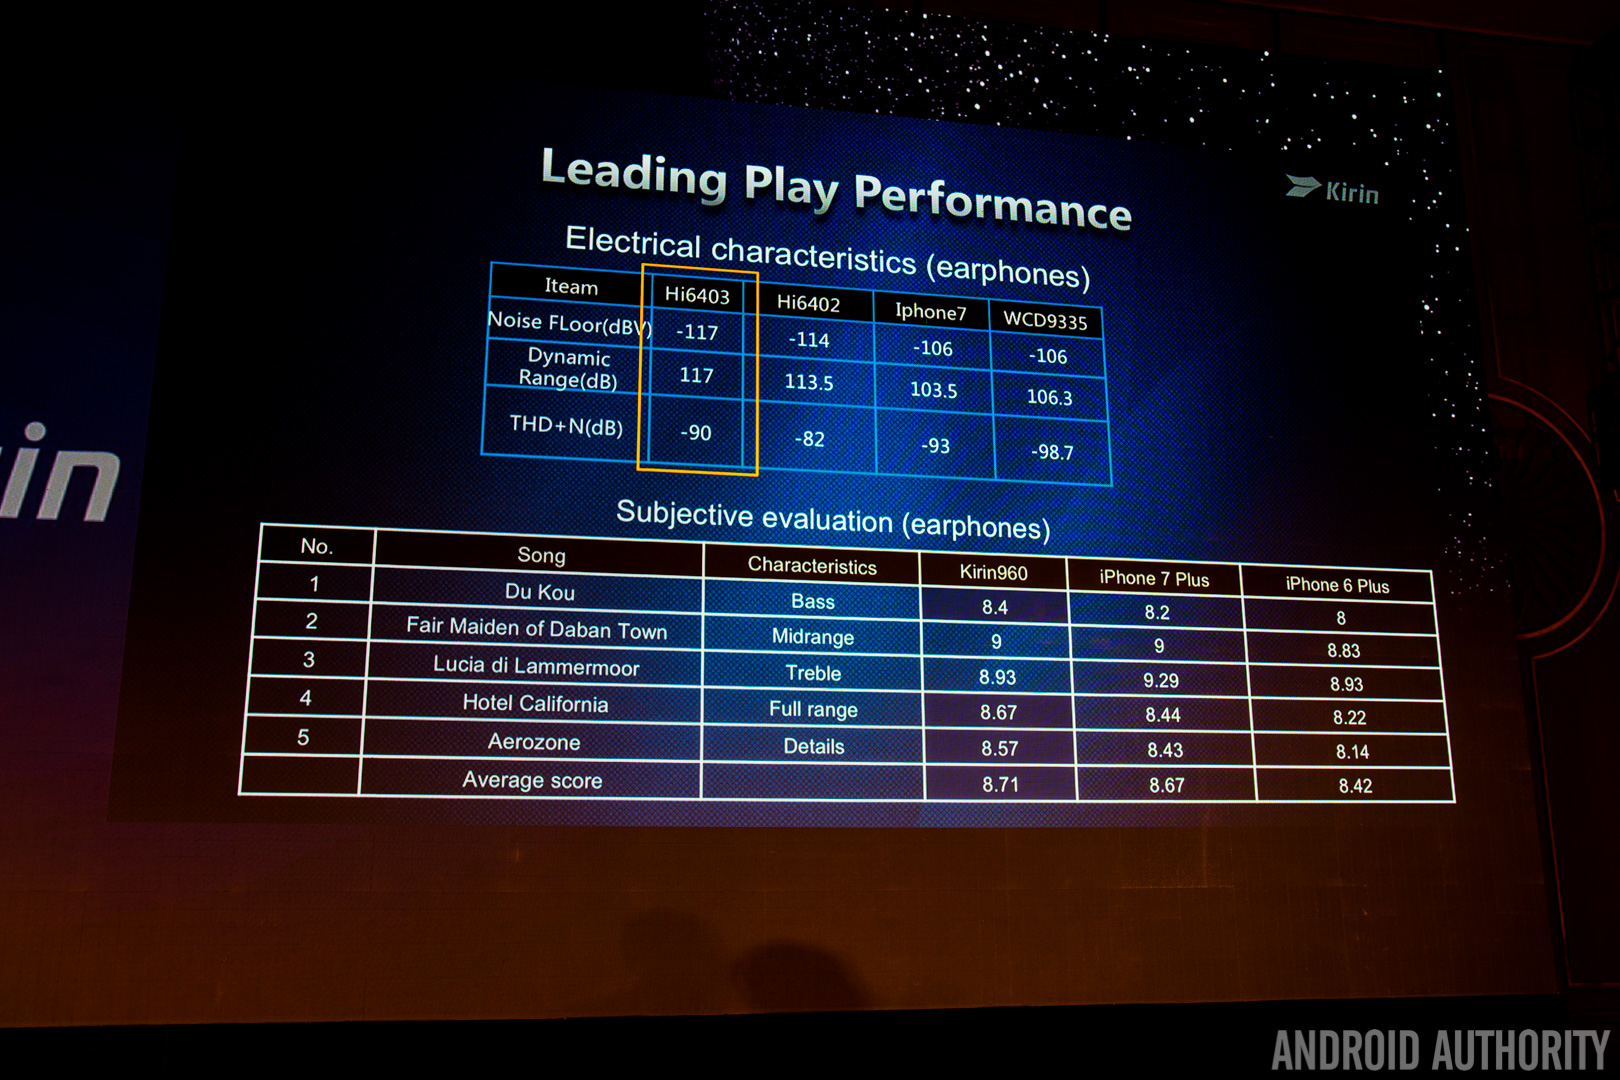 HiSilicon's Kirin 960 is ready to take on Samsung and Qualcomm